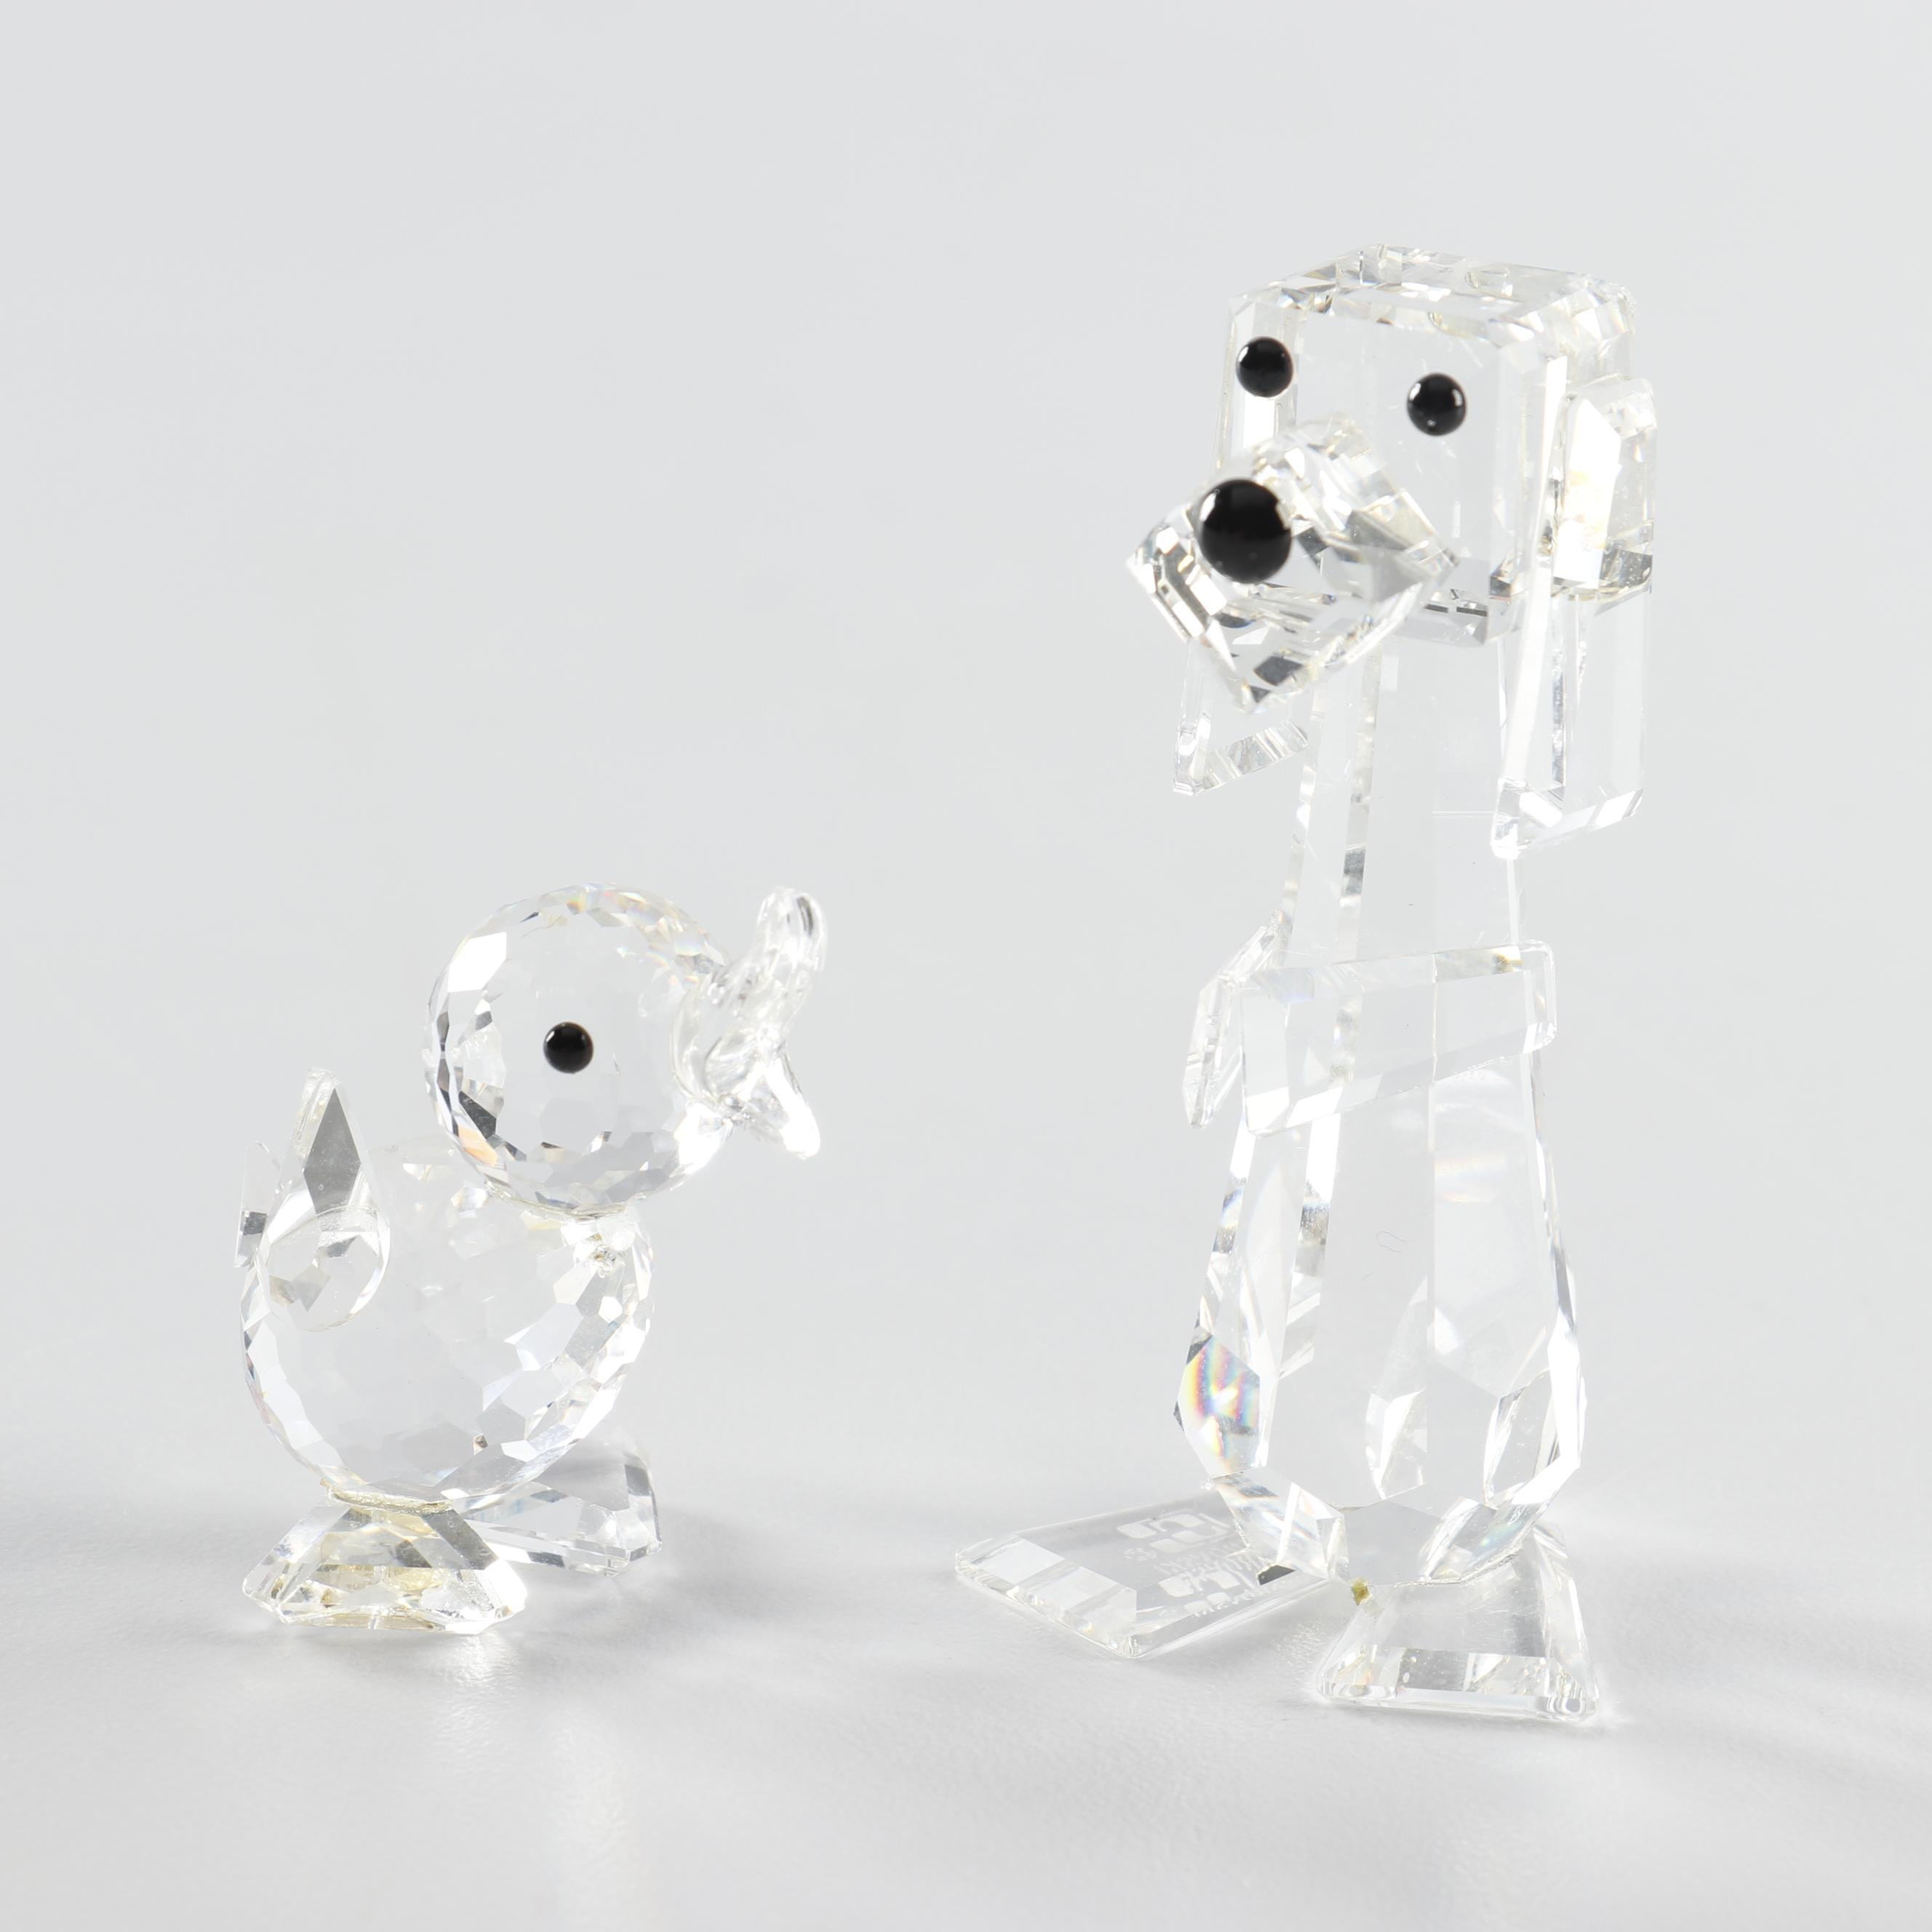 Swarovski Crystal Dog and Duck Figurines